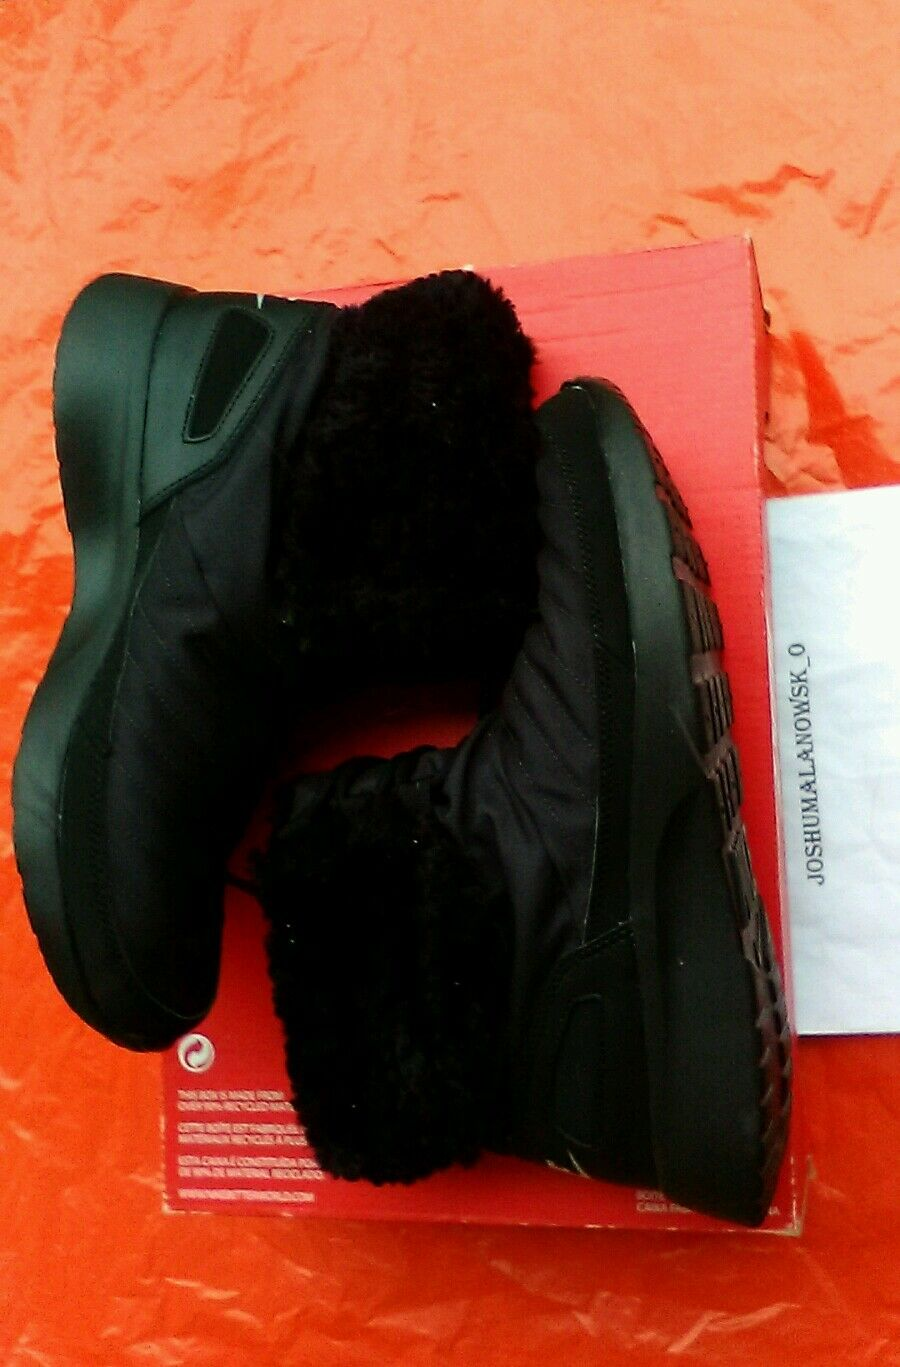 NEW IN BOX NIKE WOMEN'S KAISHI WINTER HIGH COLD WEATHER FUR BOOTS SHOES SIZE 6.5